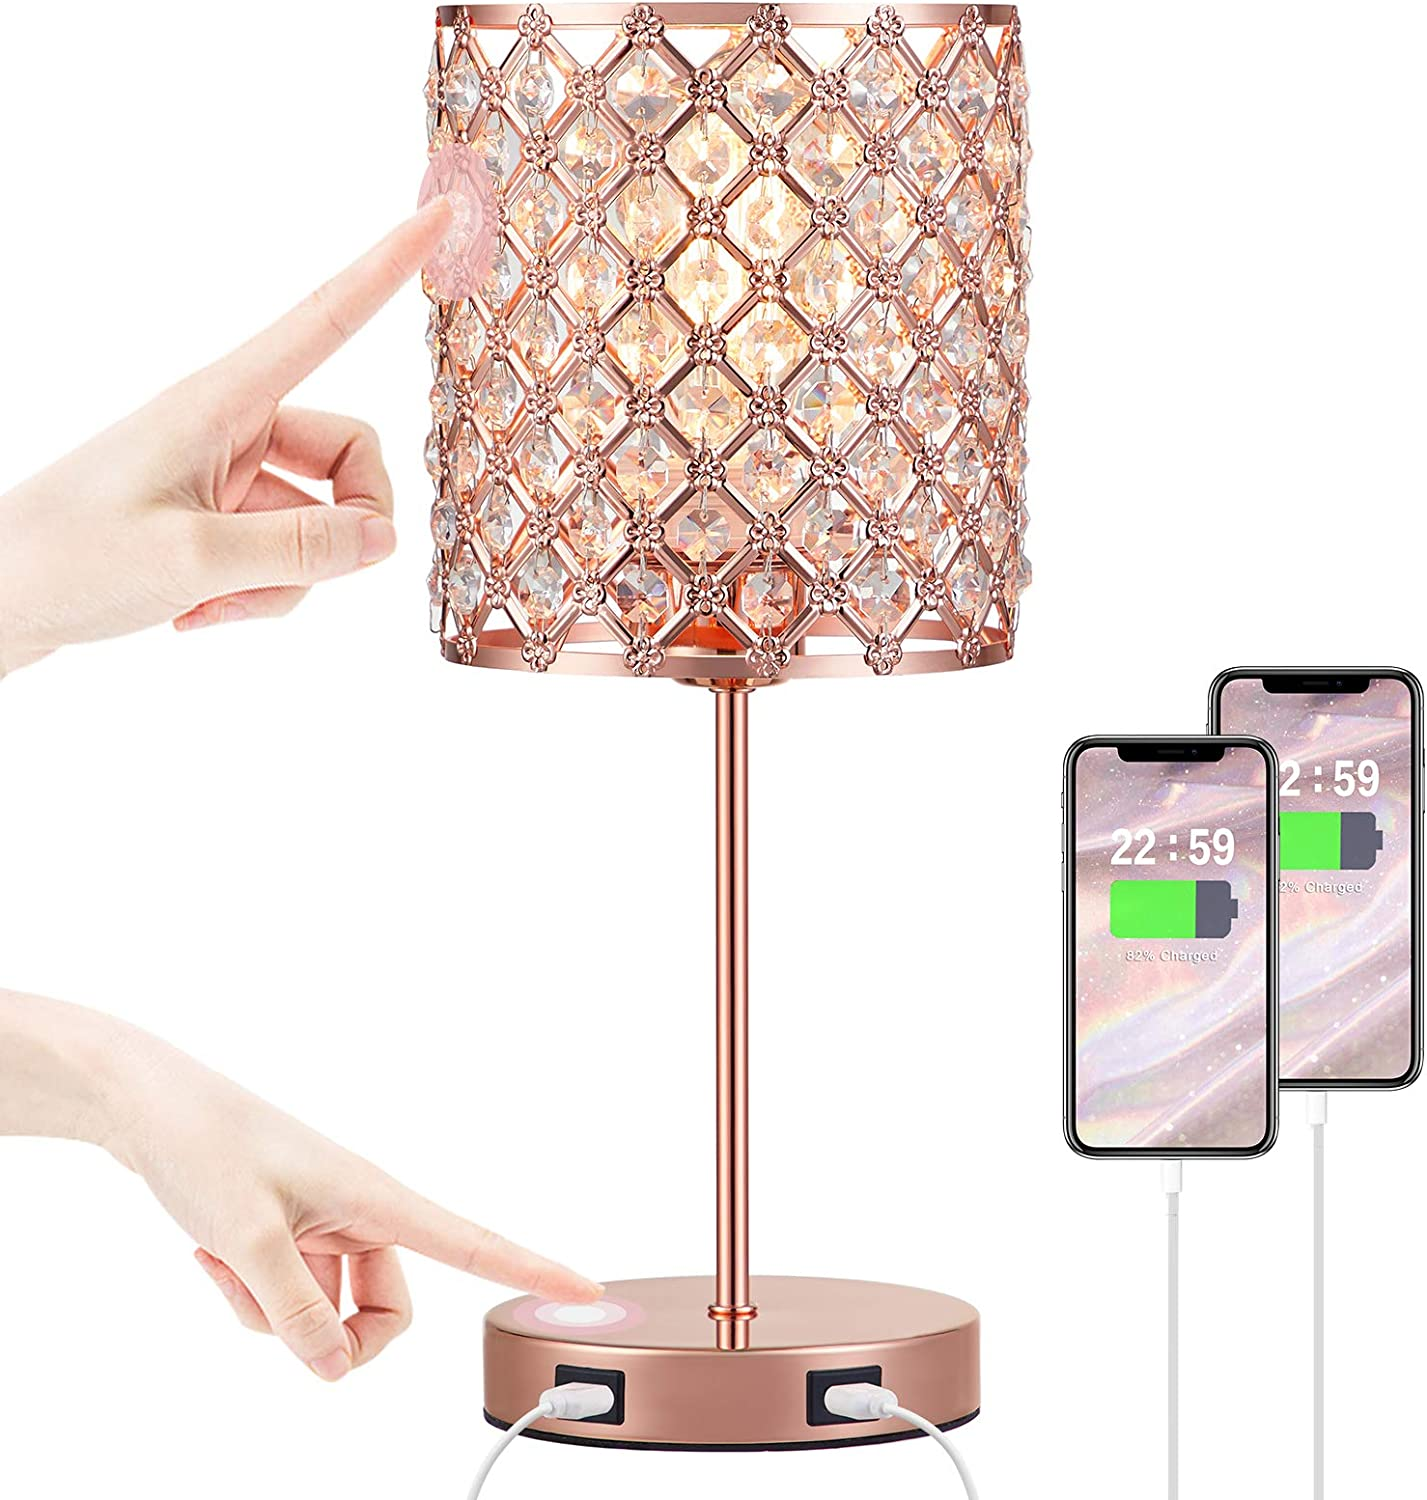 Crystal Table Lamp Touch Control, Small Rose Gold Lamp with 2 USB Ports, 3 Way Dimmable Touch Crystal Lamp for Living Room, Pink Nightstand Lamp for Grils Bedroom Decor, Dining Room(Bulb Included)